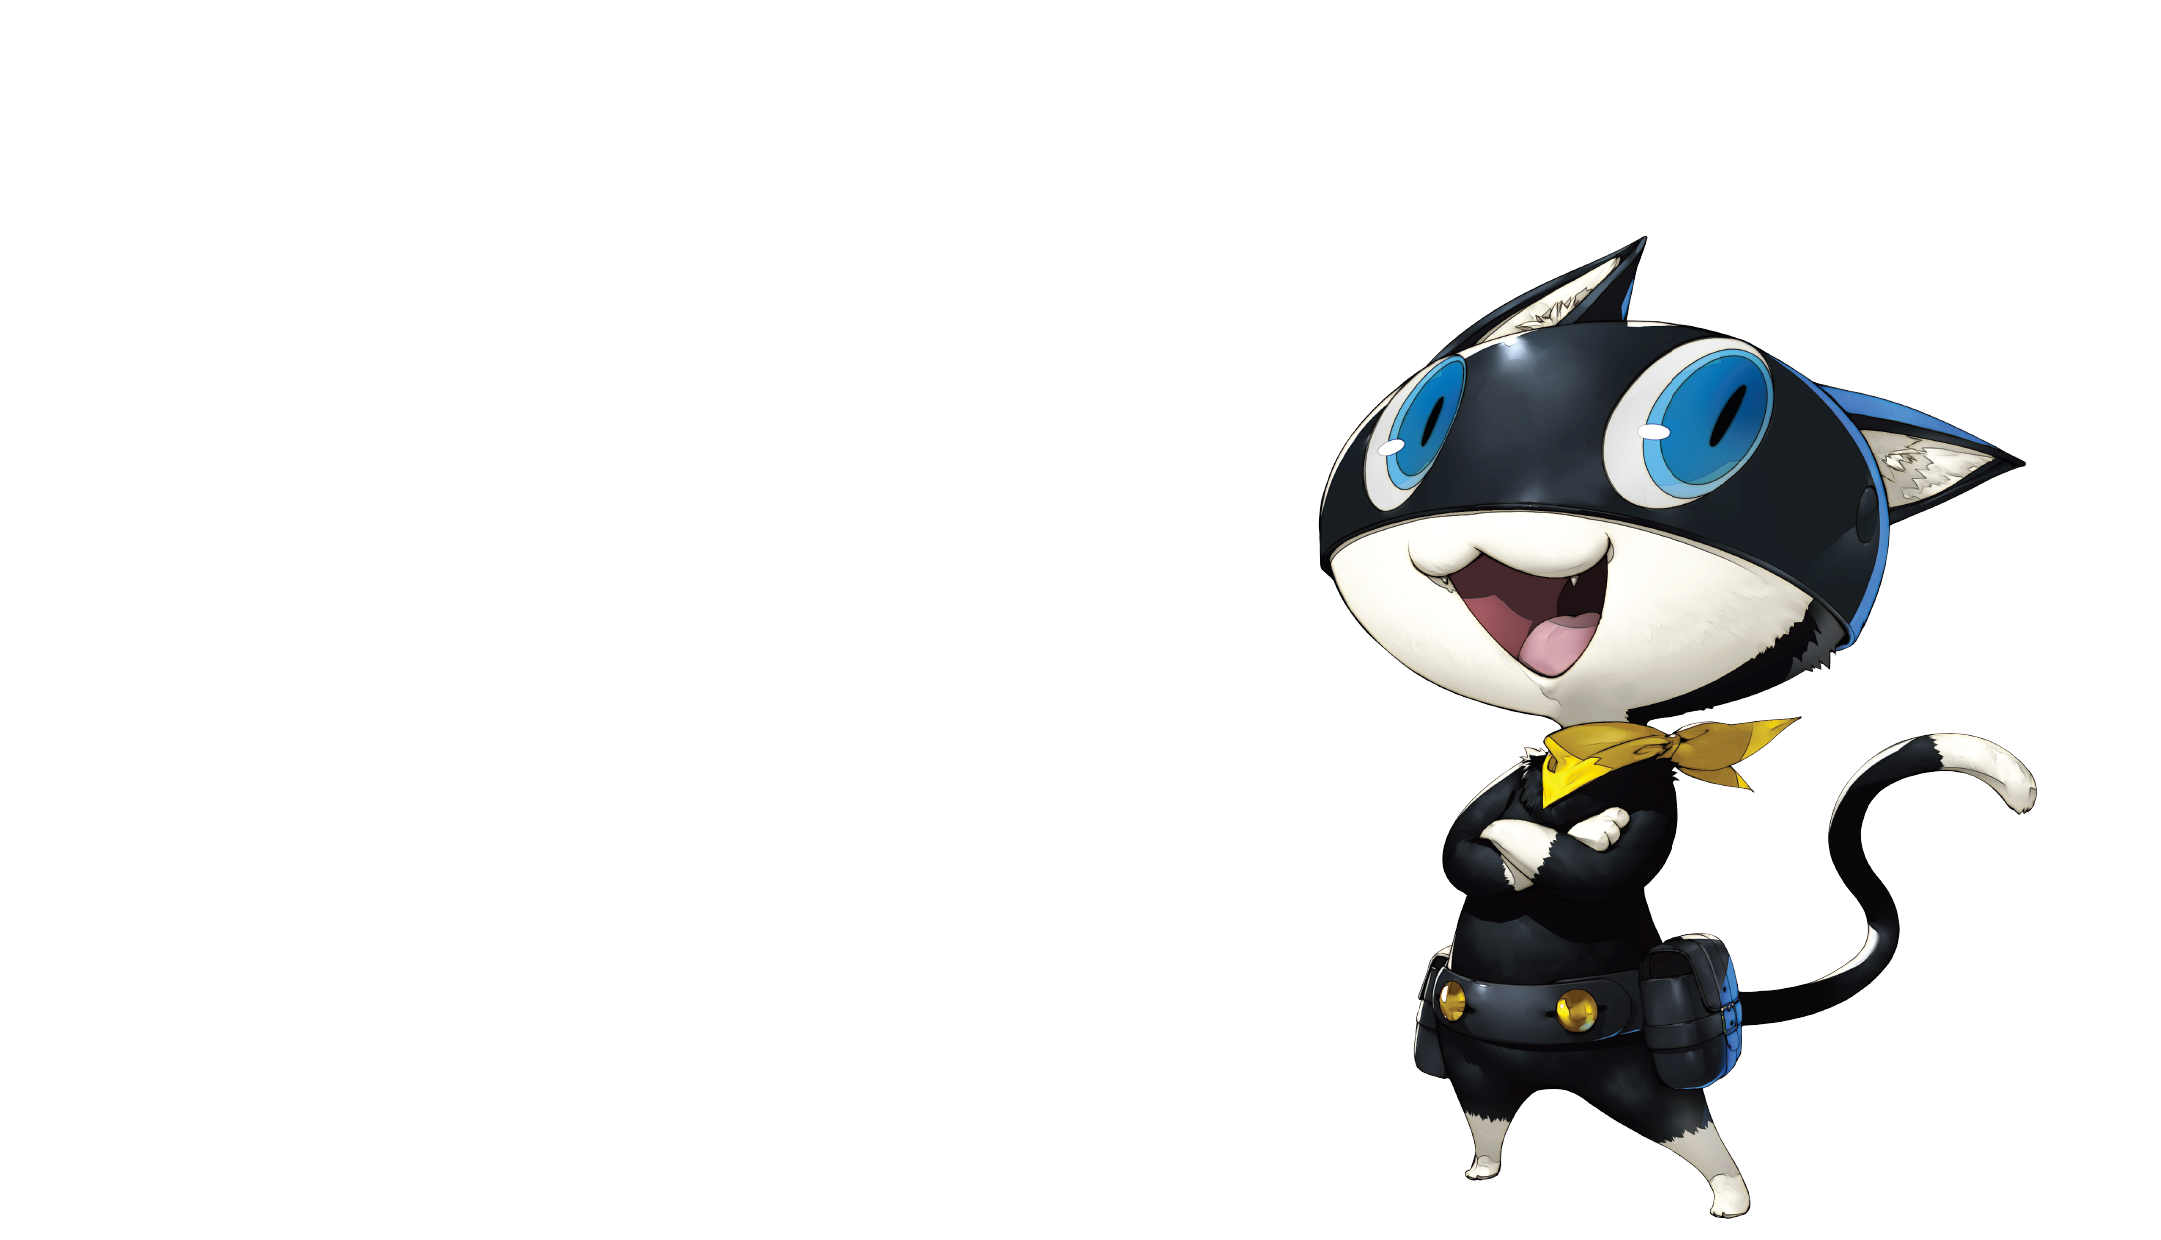 Persona 5 morgana png. Holiday published by atlus